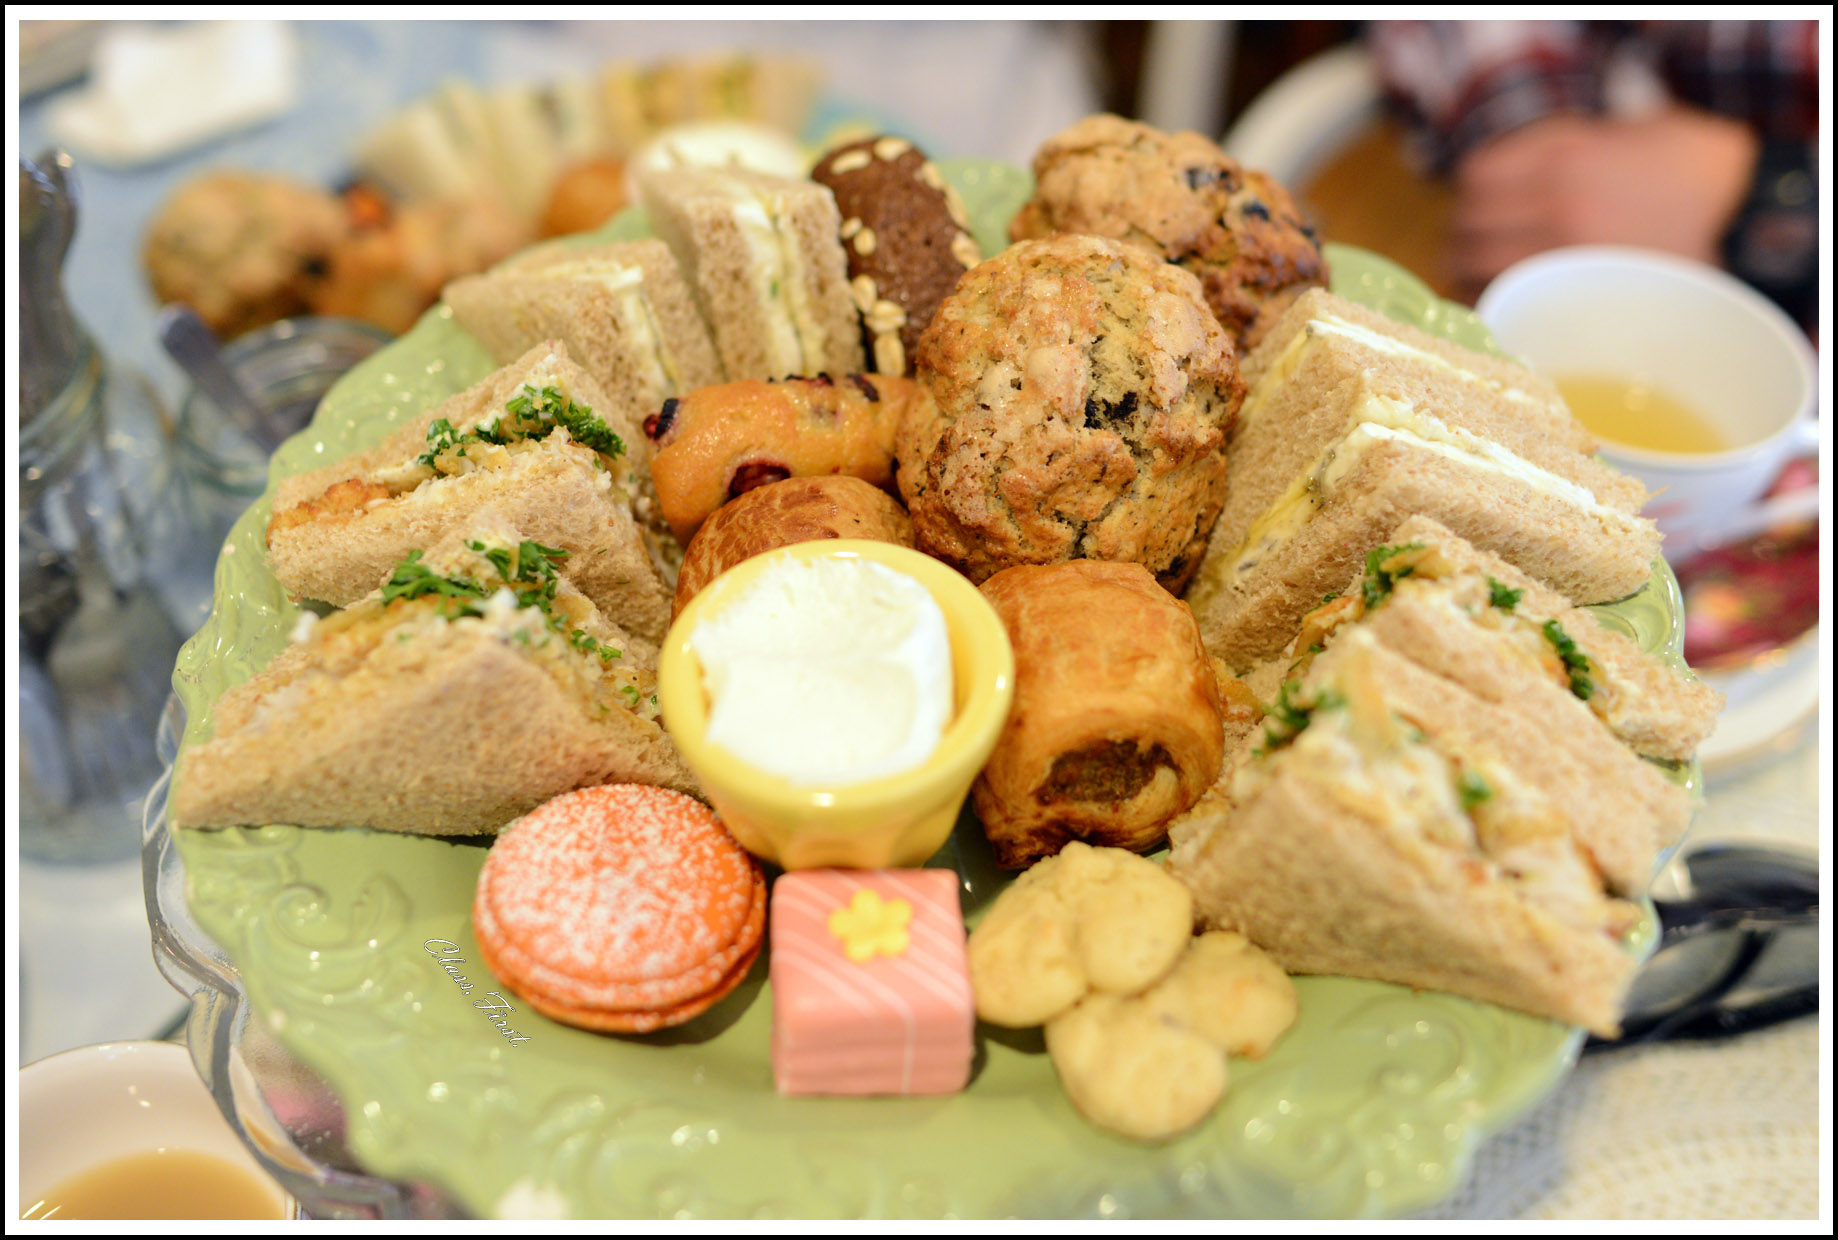 The tea sandwiches were delicious! I especially loved the salmon & dill, curry, and honey lavender cream. This was one of the many pastry tiers served!